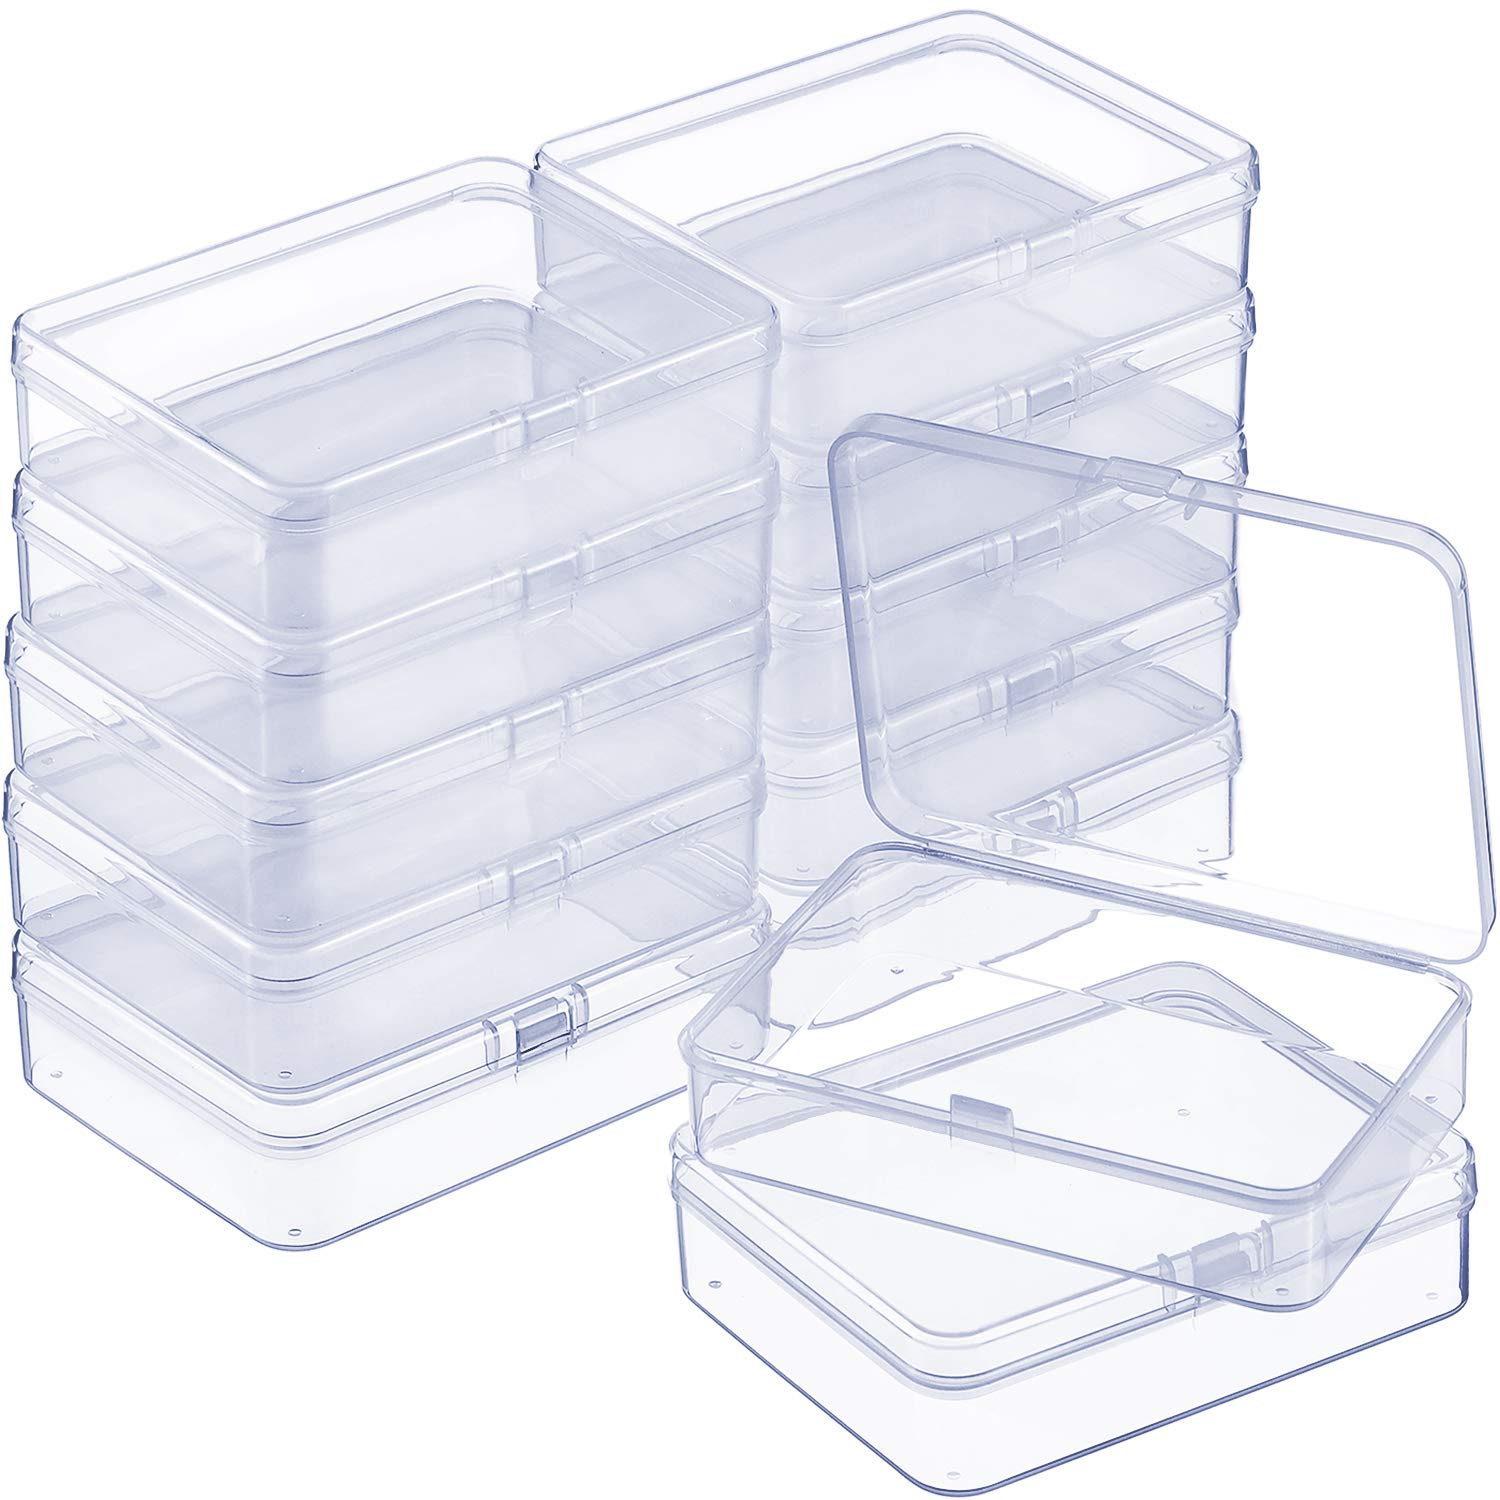 SATINIOR 12 Pack Clear Plastic Beads Storage Containers Box with Hinged Lid for Beads and More (4.45 x 3.3 x 1.18 Inch)